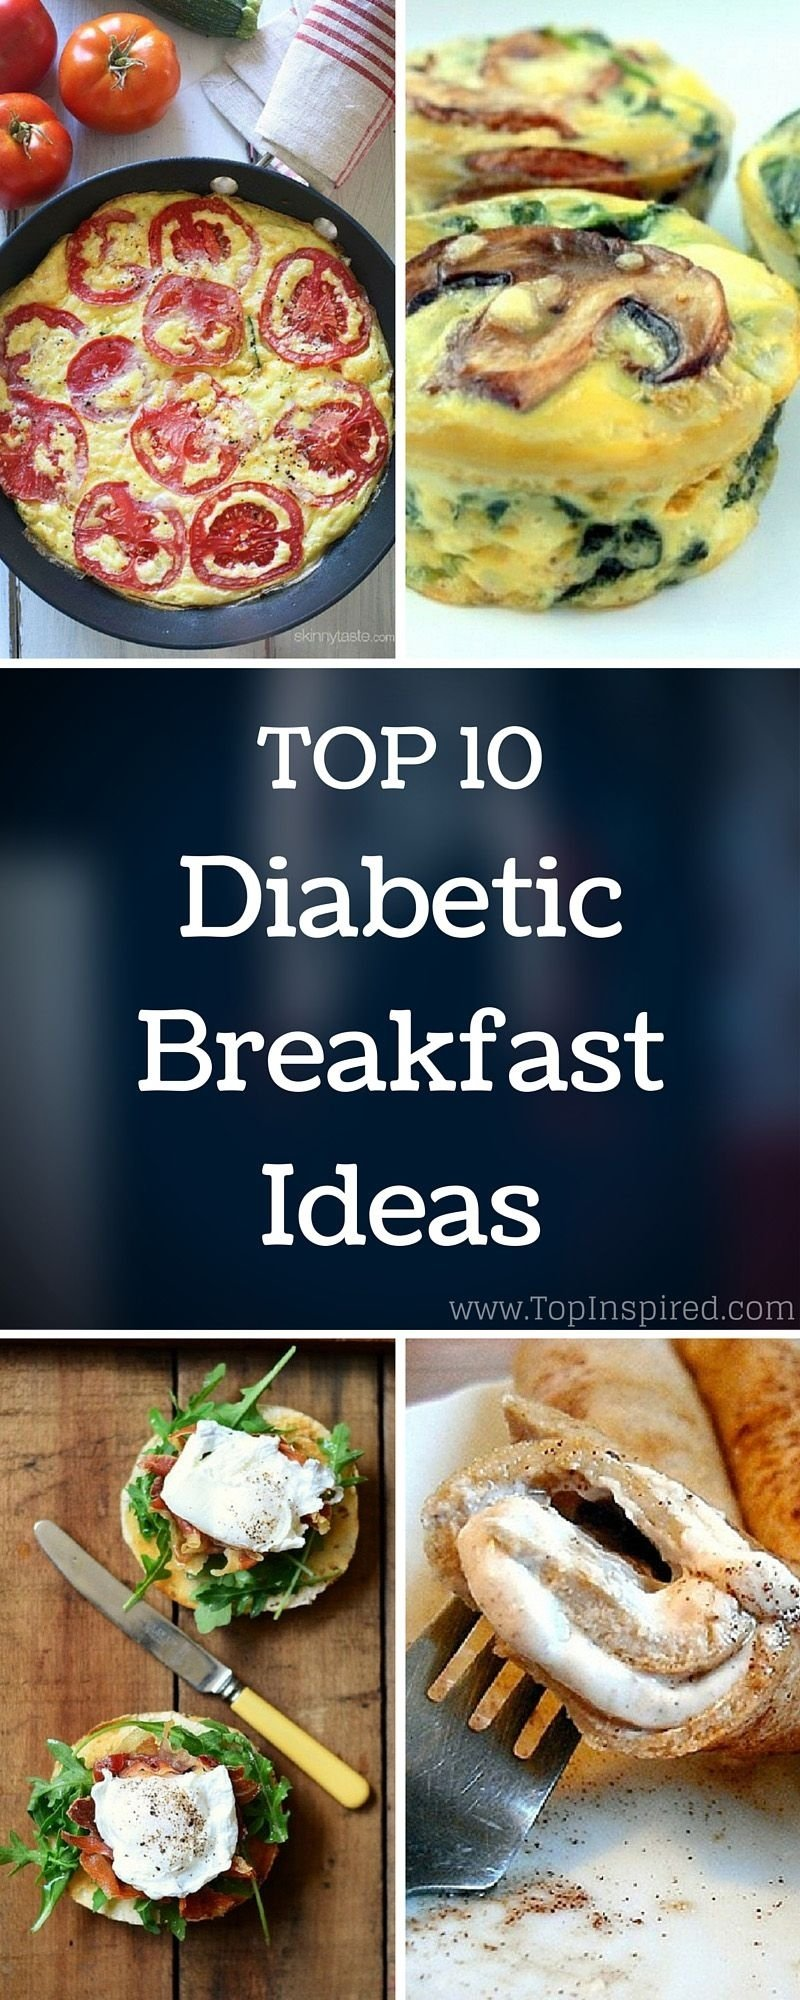 10 Stunning Gestational Diabetes Recipes Meal Ideas top 10 diabetic breakfast ideas diabetic breakfast diabetes and 2021